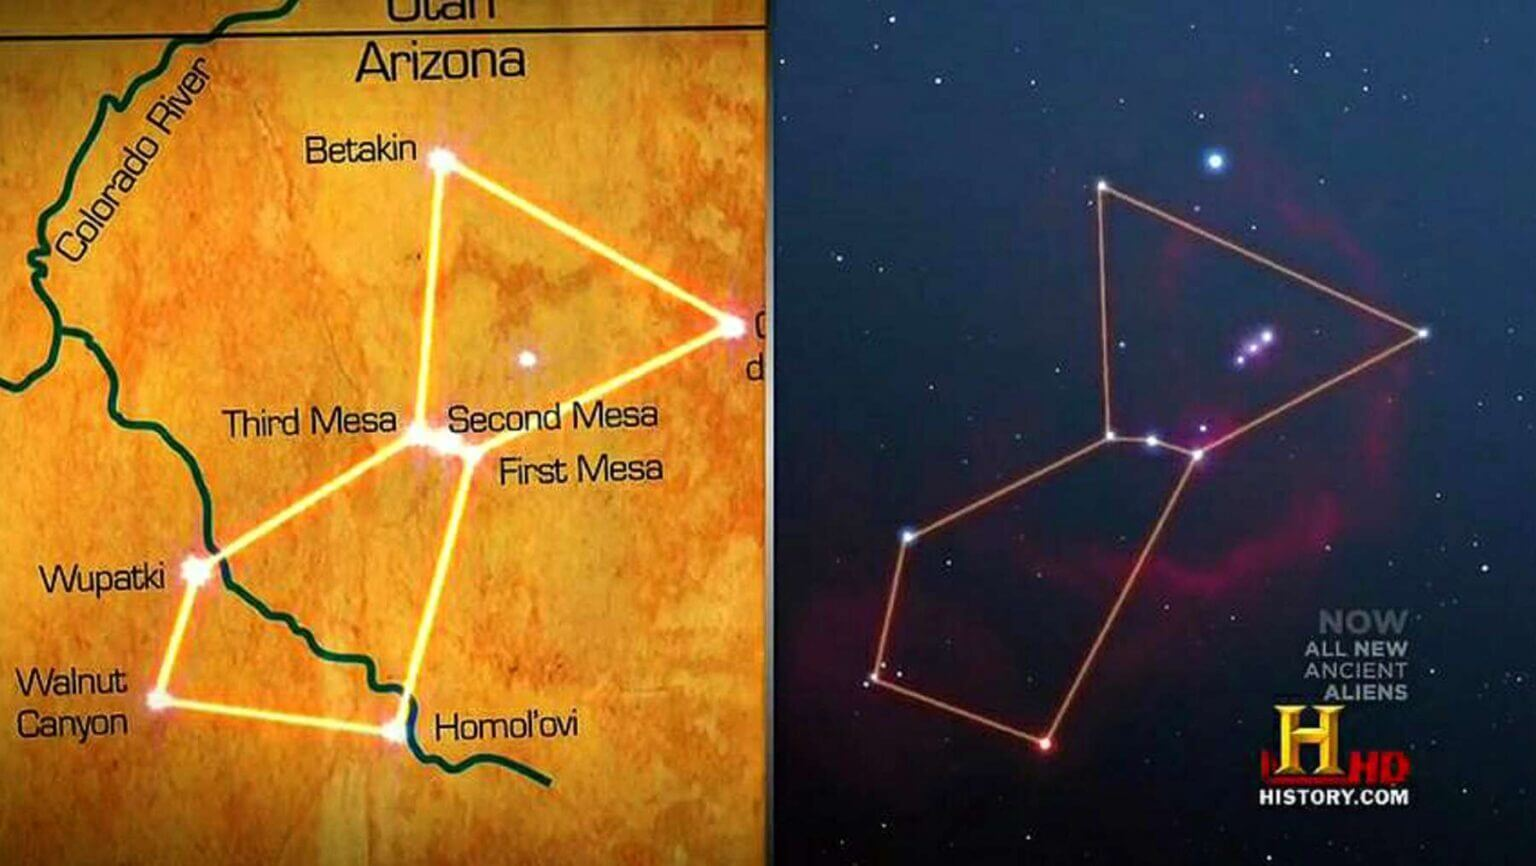 The three Hopi Mesas align perfectly with the constellation of Orion © History.com